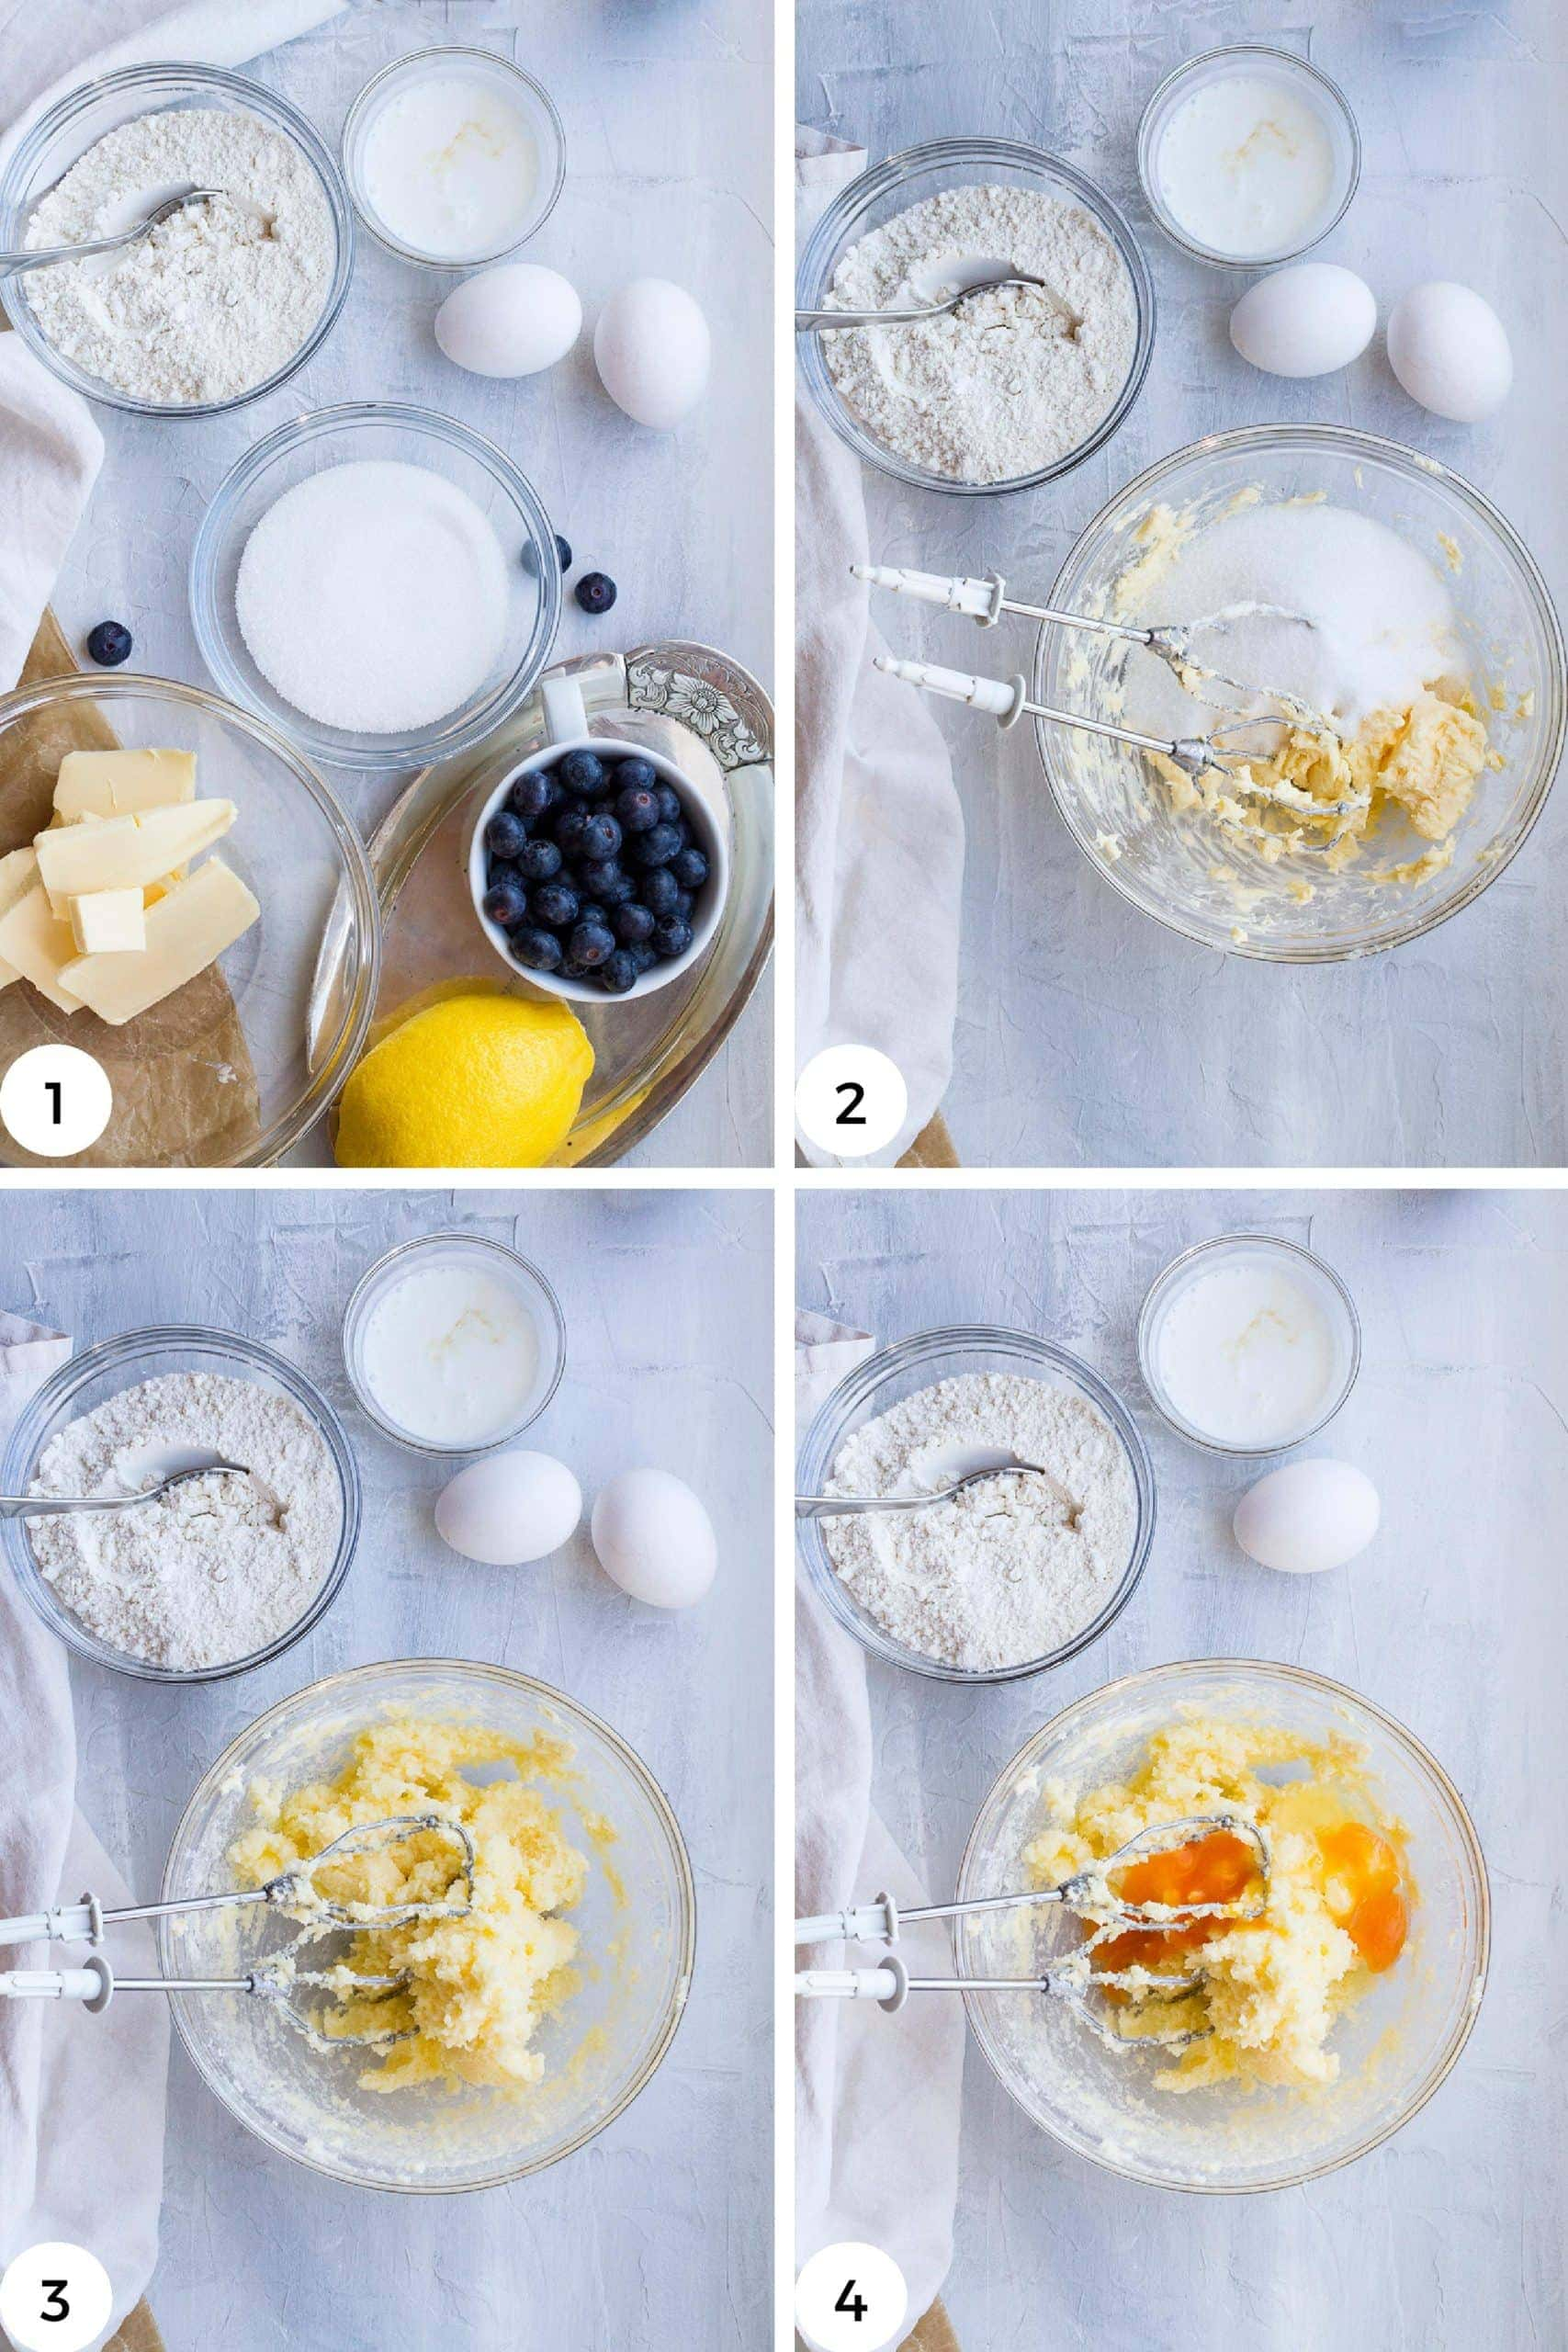 4 first steps to make this lemon blueberry cake.